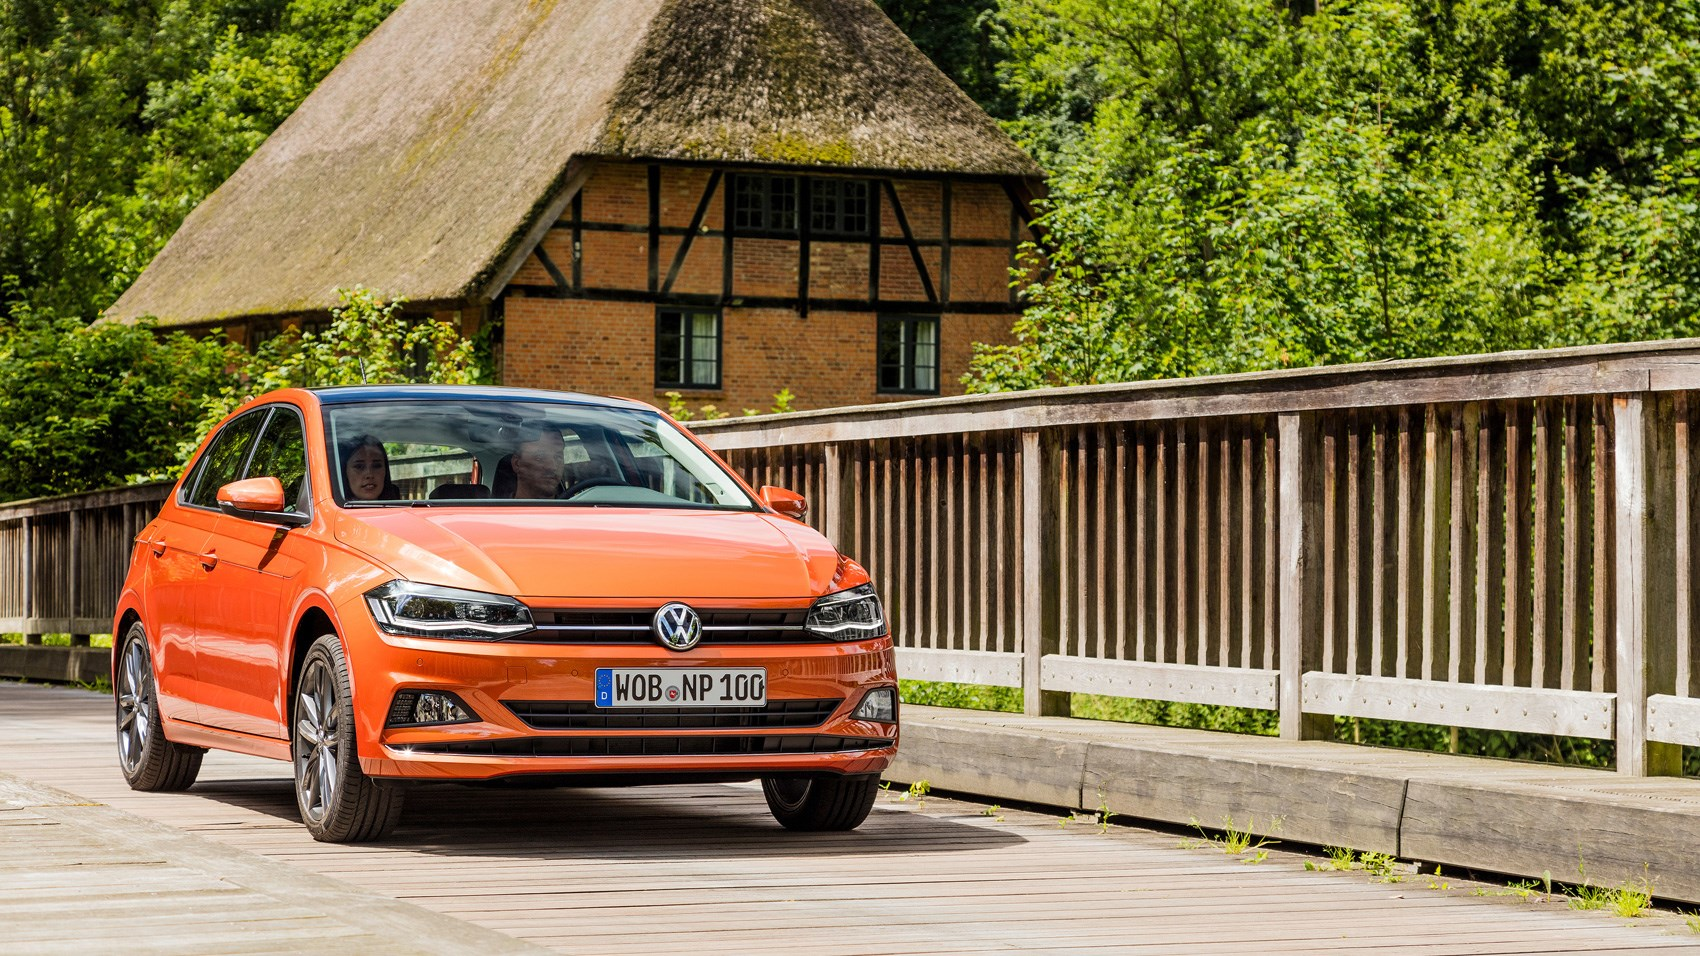 Volkswagen polo volkswagen car from united kingdom -  Vw Polo 2018 Review